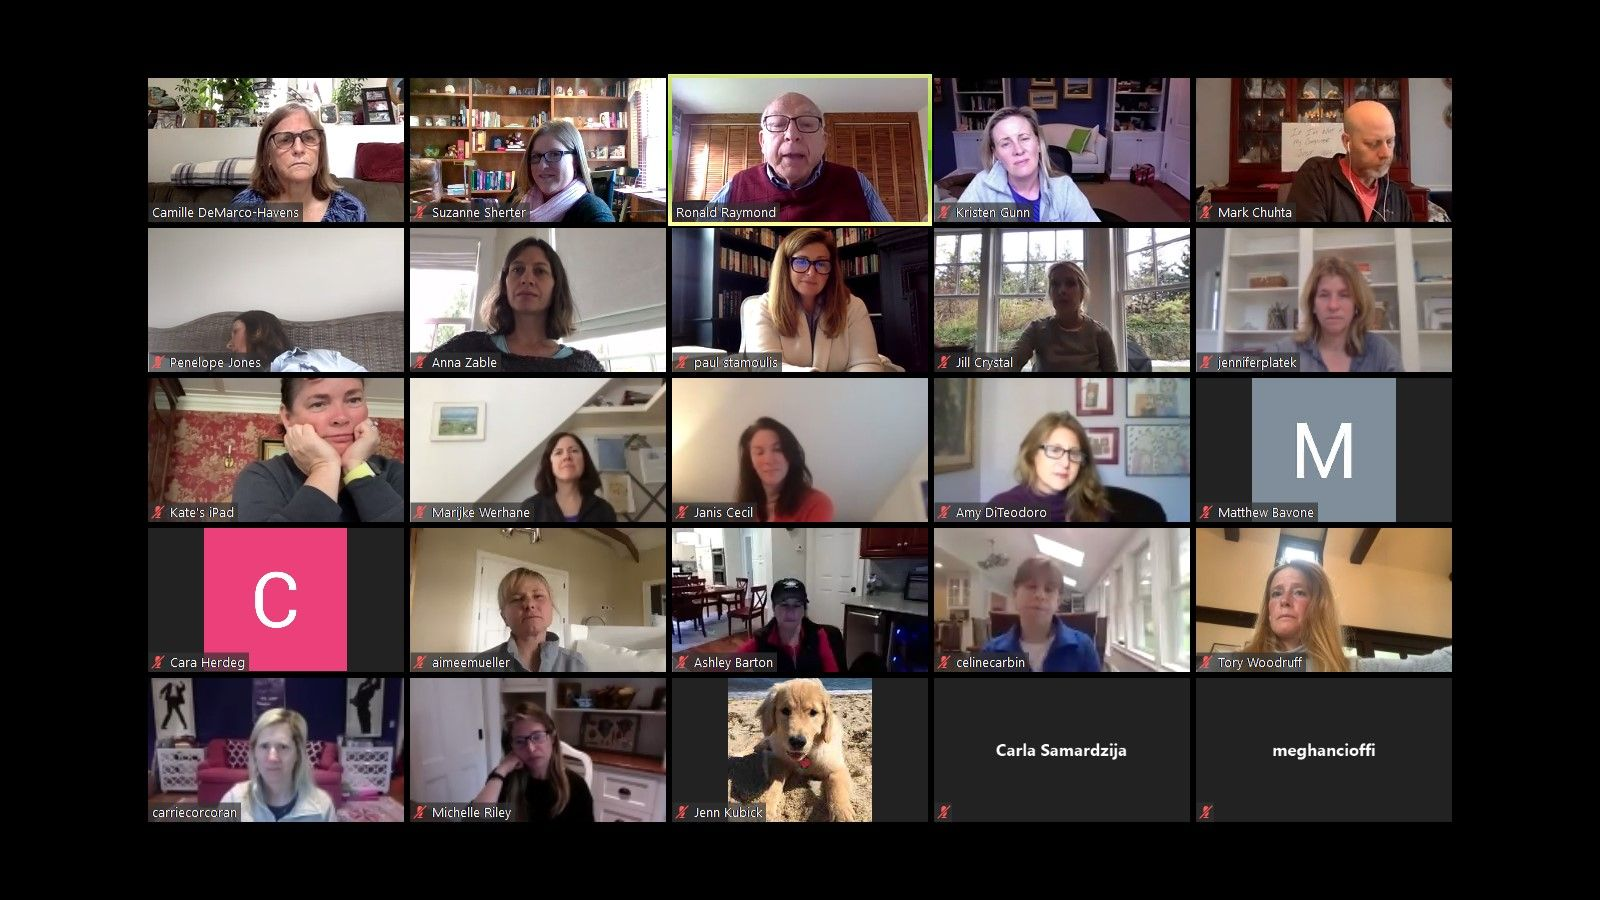 PA Virtual Brown Bag Lunch with Camille DeMarco-Havens and Dr. Raymond